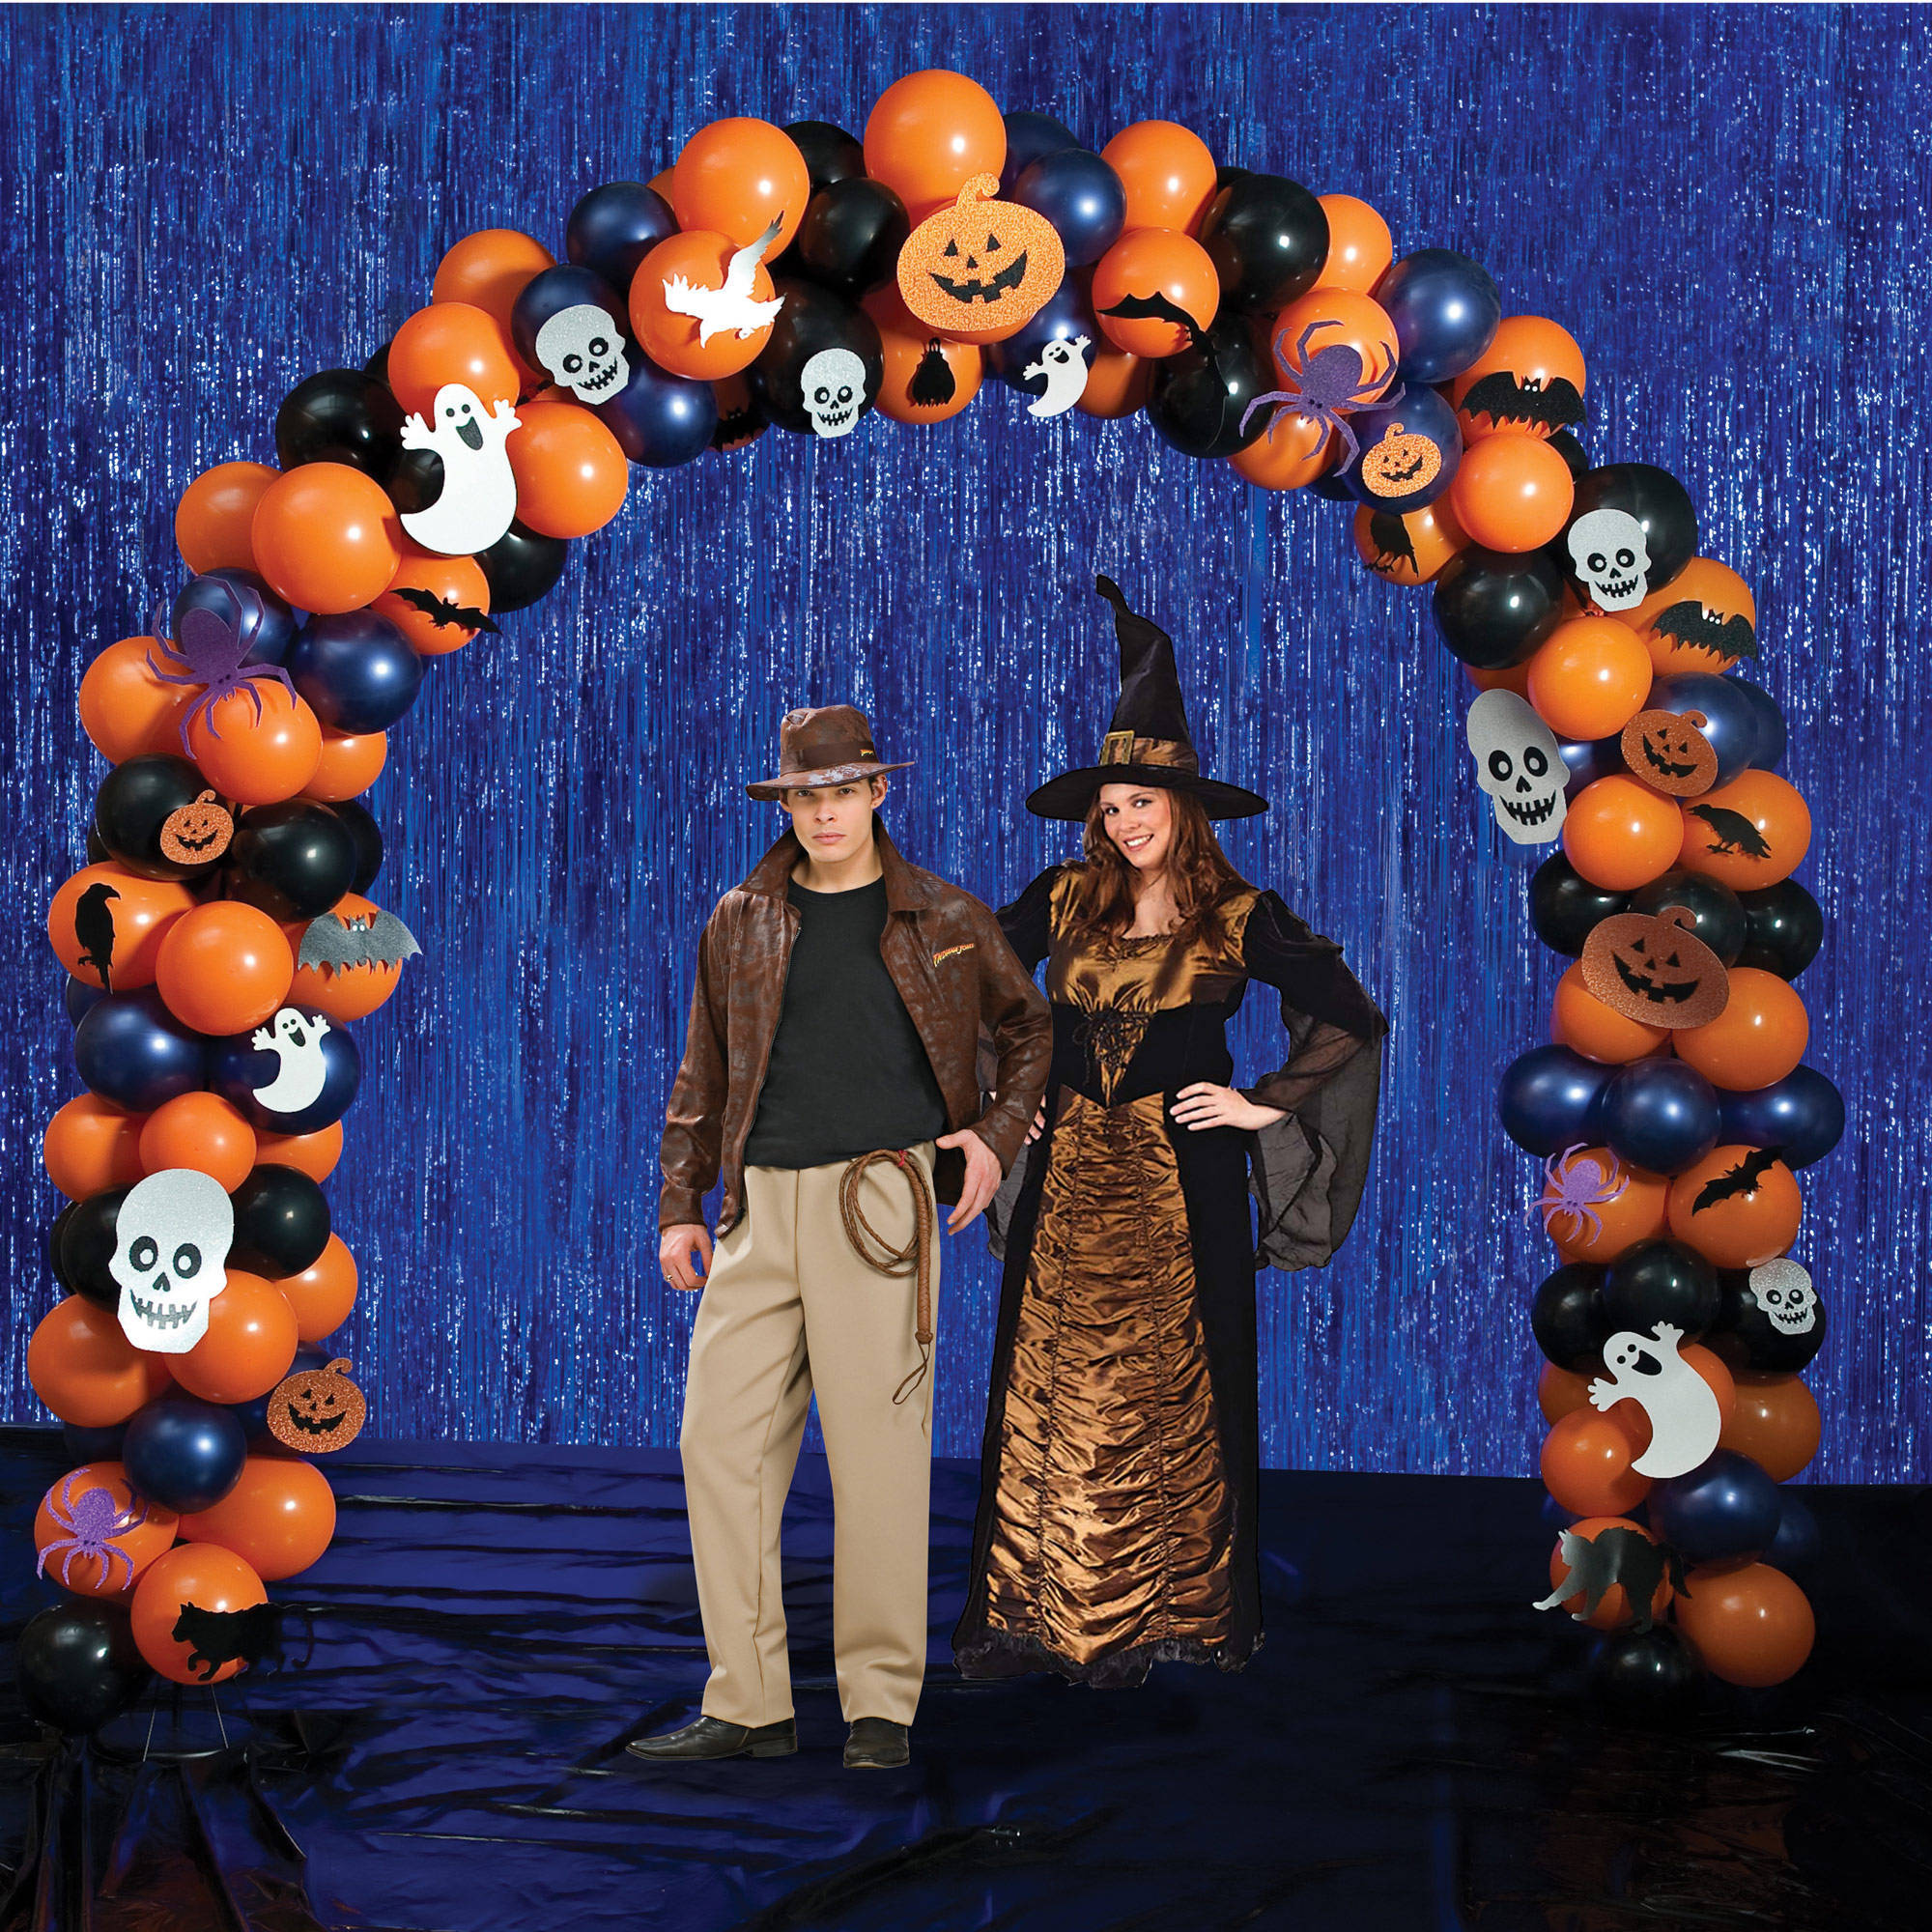 Buy Halloween Party Radiant Balloon Arch Kit for sale on okmodle.co.uk